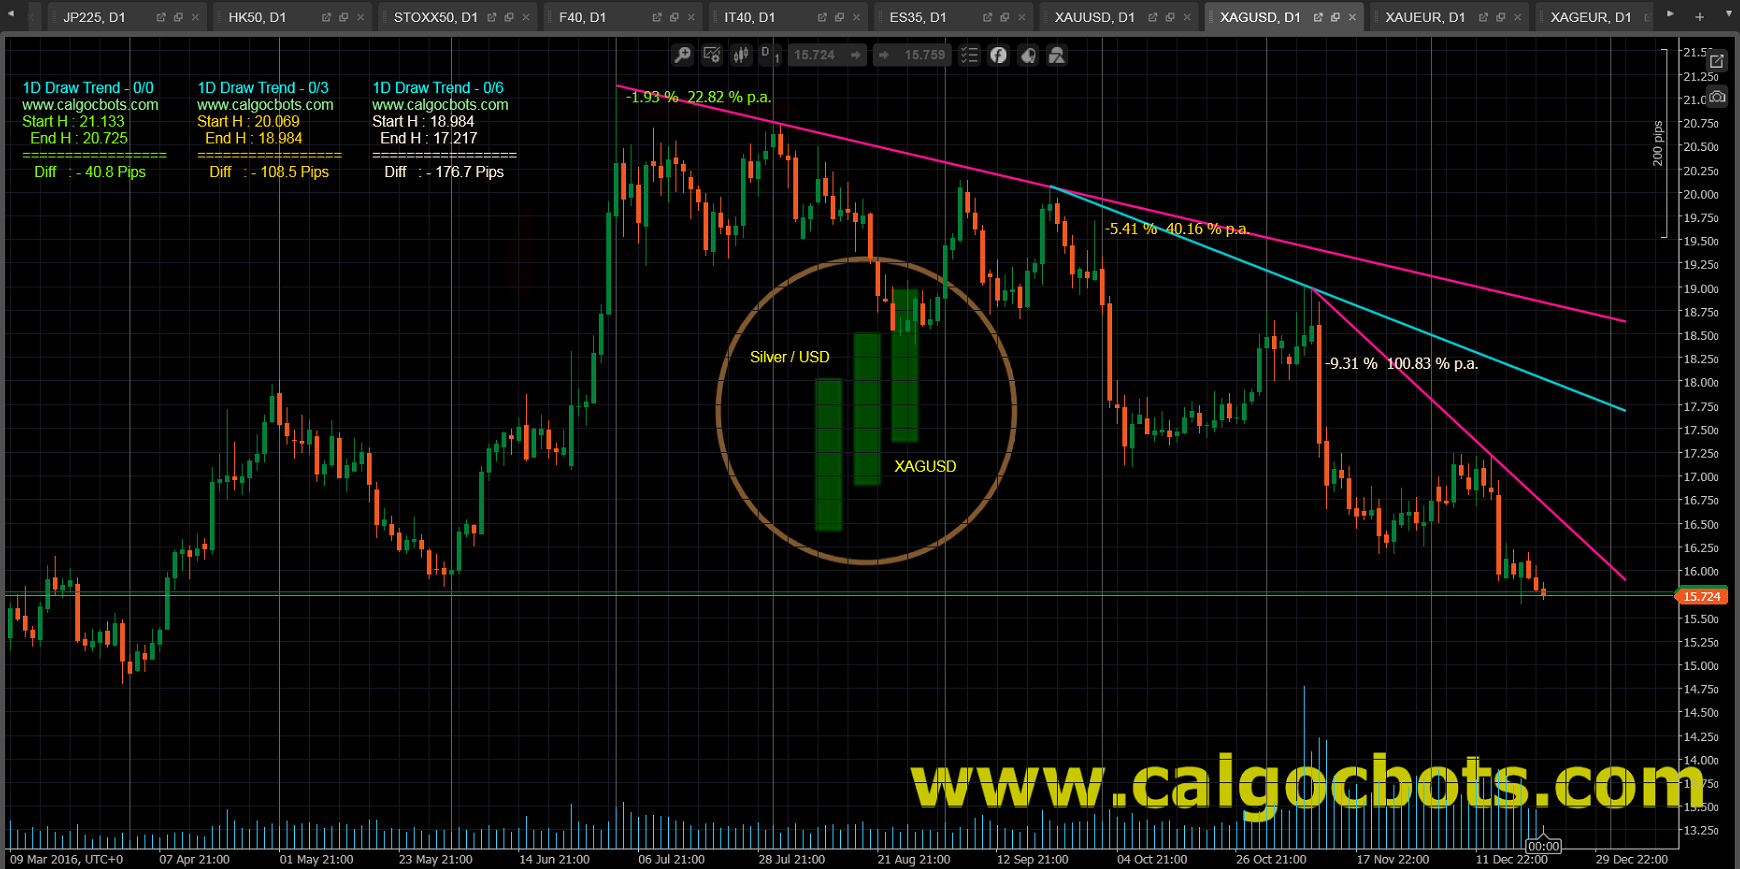 1D Draw Trend - cAlgo and cTrader Indicator - Silver USD Spot - XAGUSD Daily Chart - 003